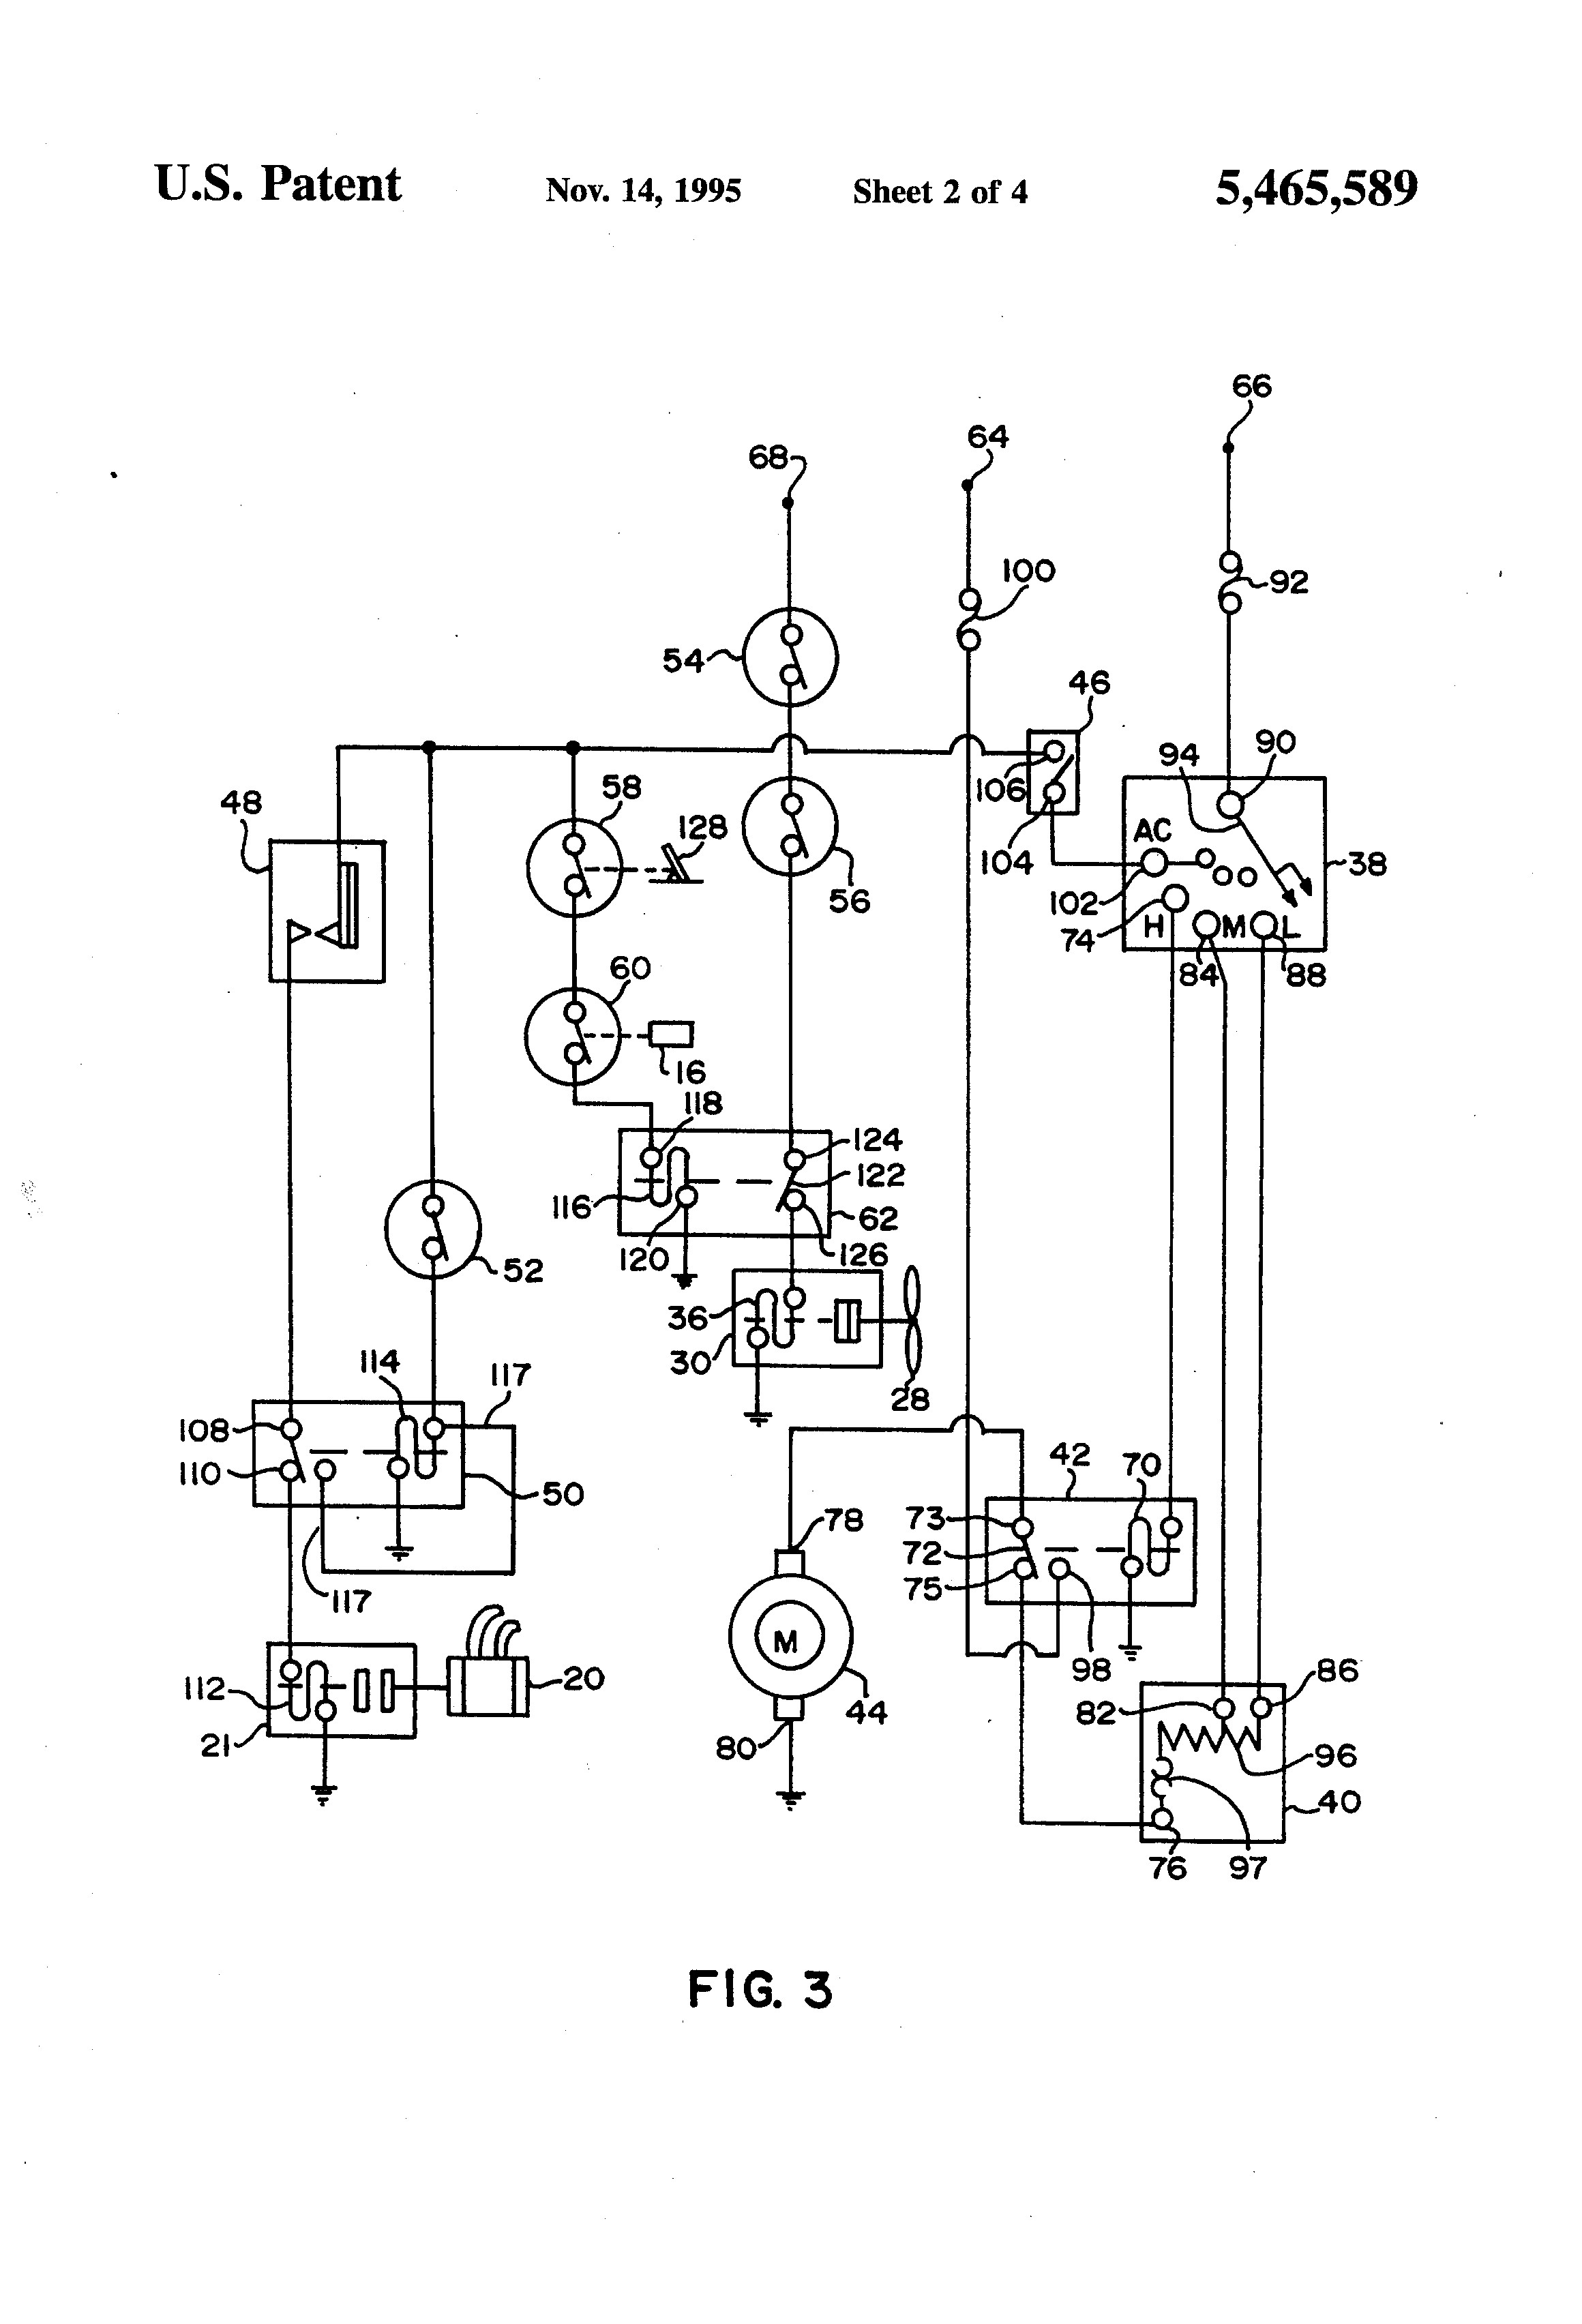 706 Farmall Wiring Harness Free Download Wiring Diagram Schematic